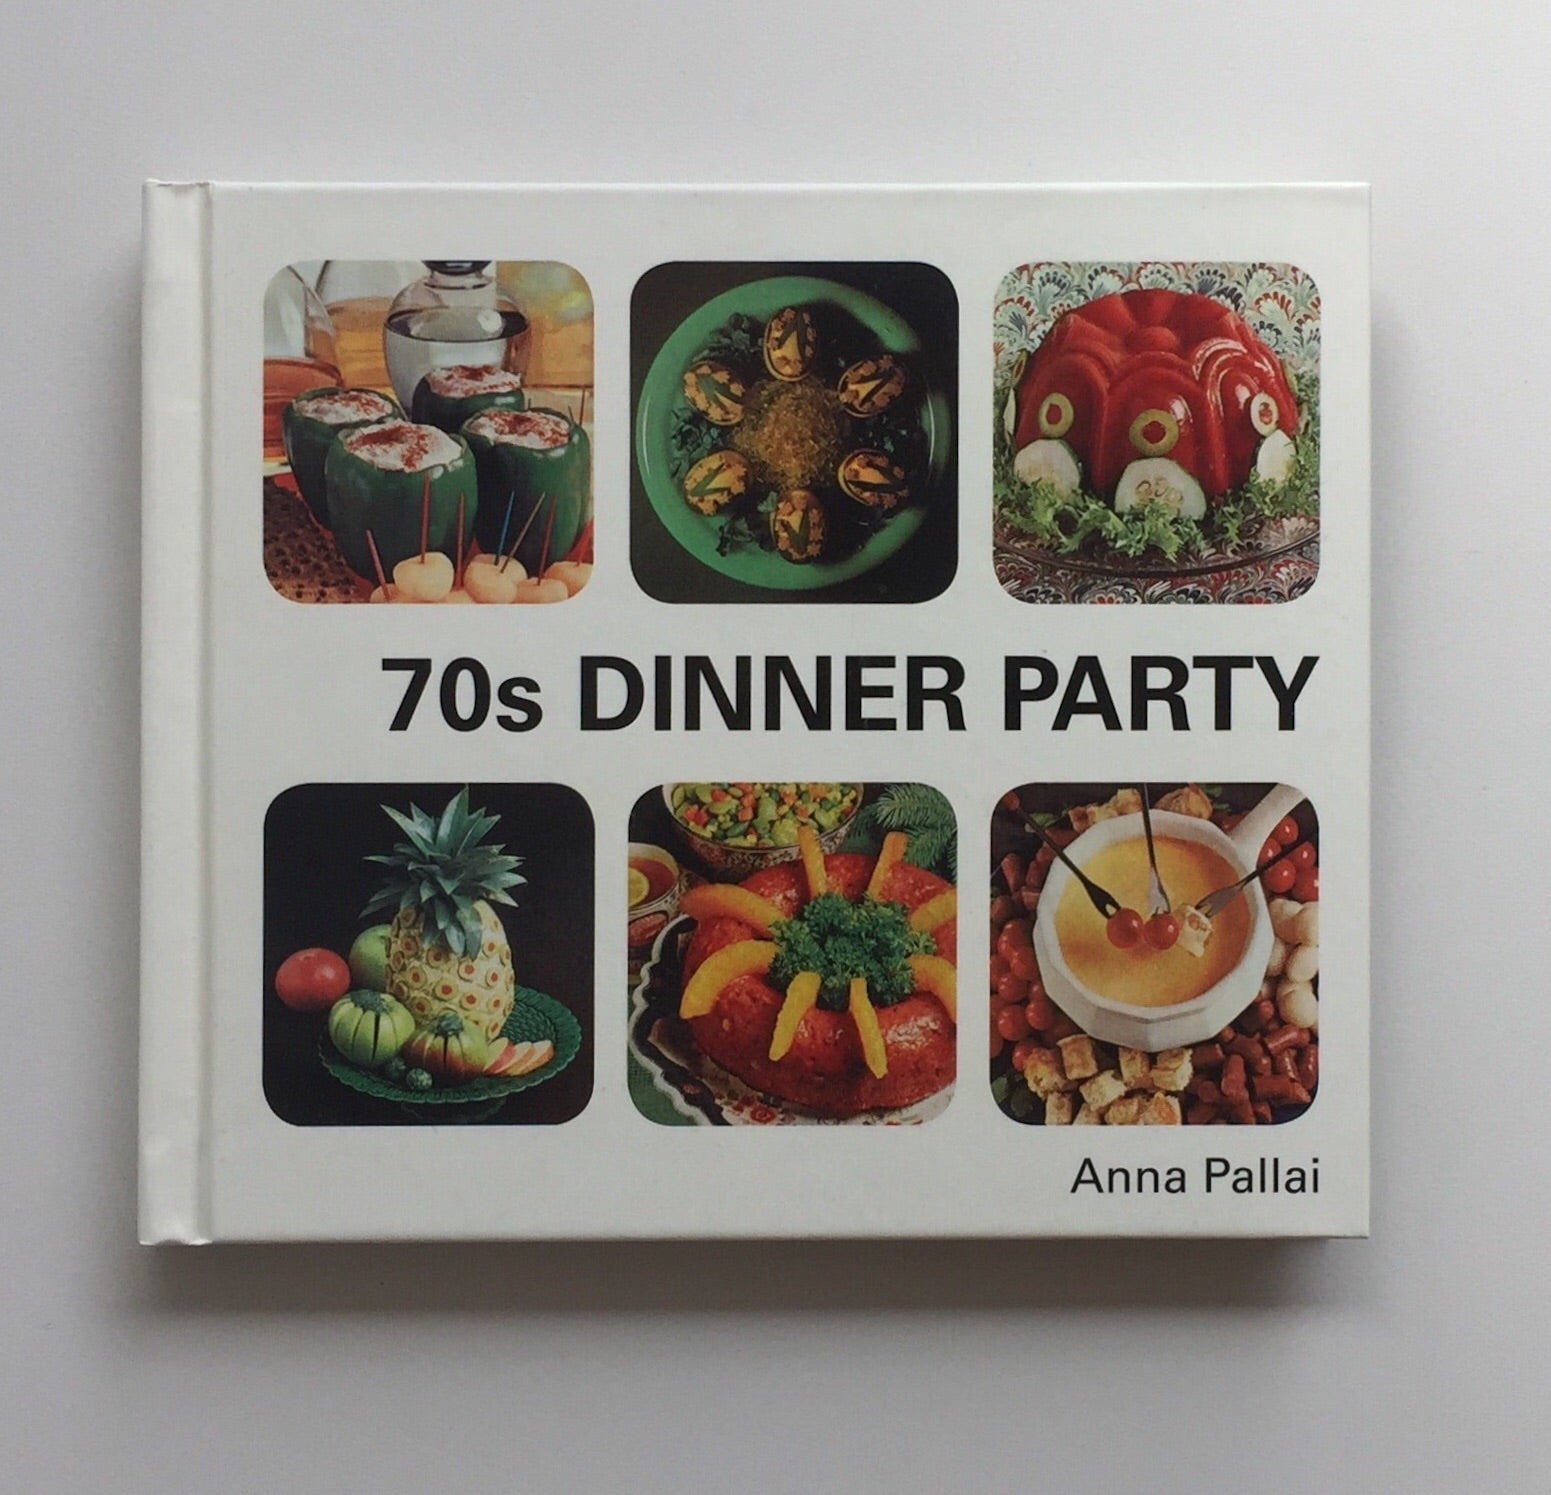 70s Dinner Party: The Good, the Bad and the Downright Ugly of Retro Food by Anna Pallai